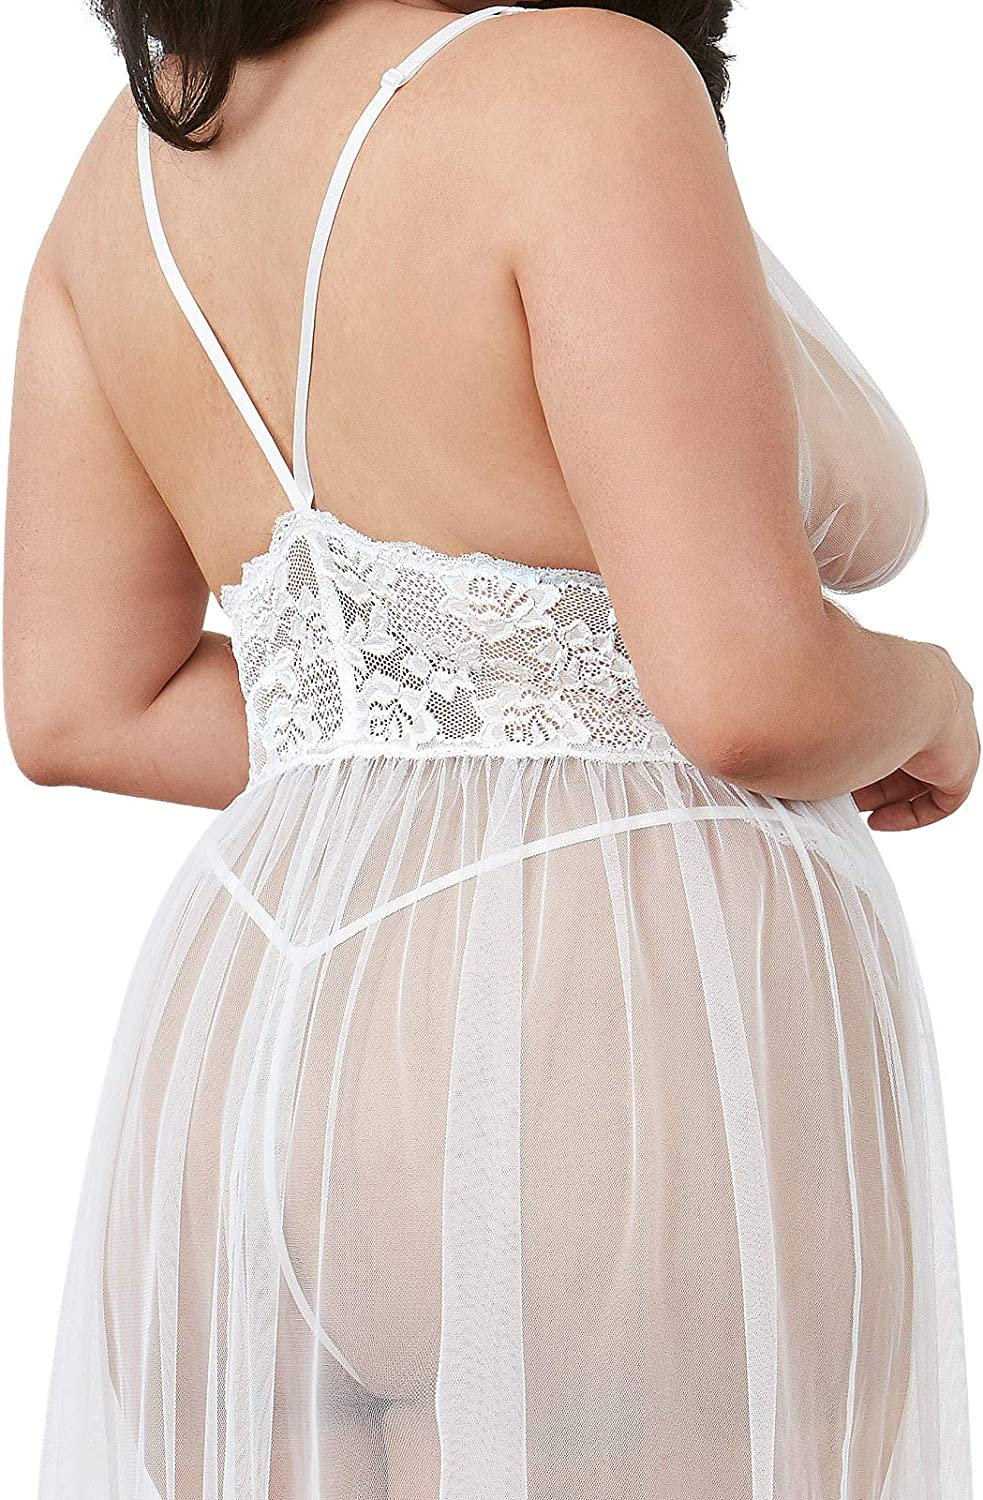 Dreamgirl Women's Plus Gown, White, One Size Queen: Clothing